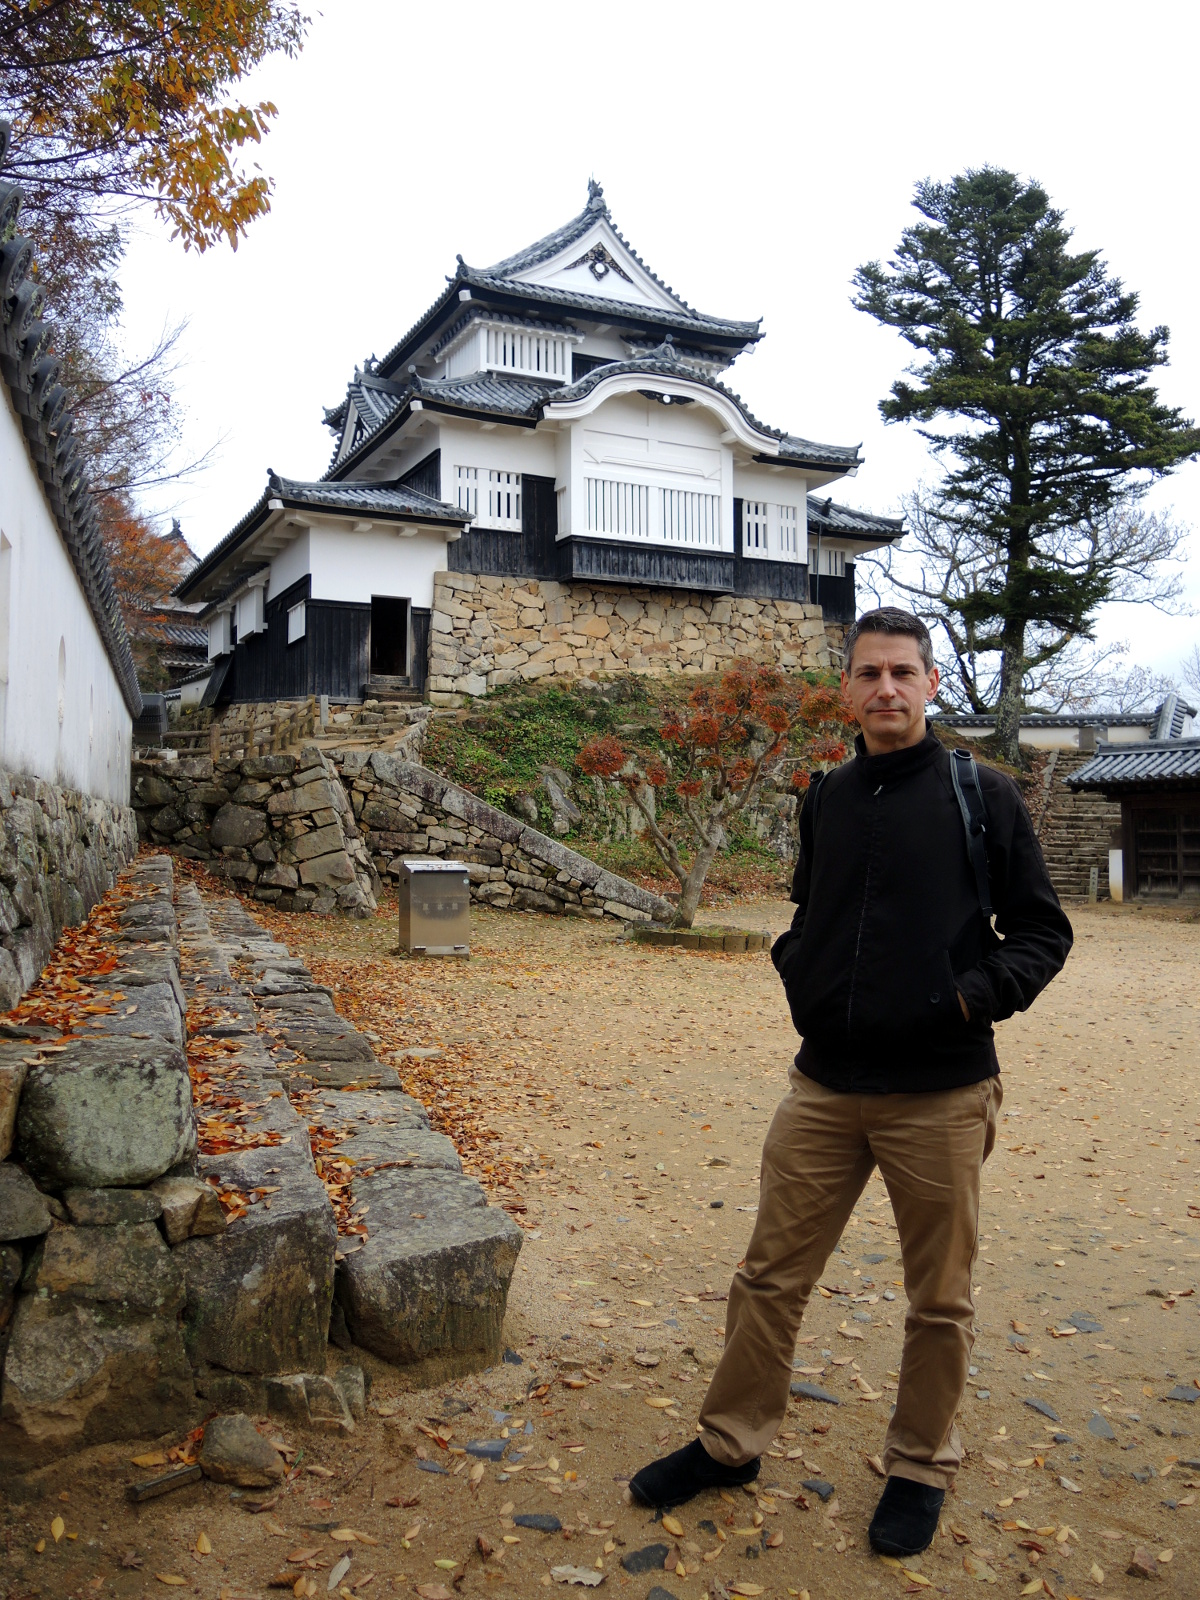 Bitchu Matsuyama Castle, Takahashi The Real Japan Rob Dyer